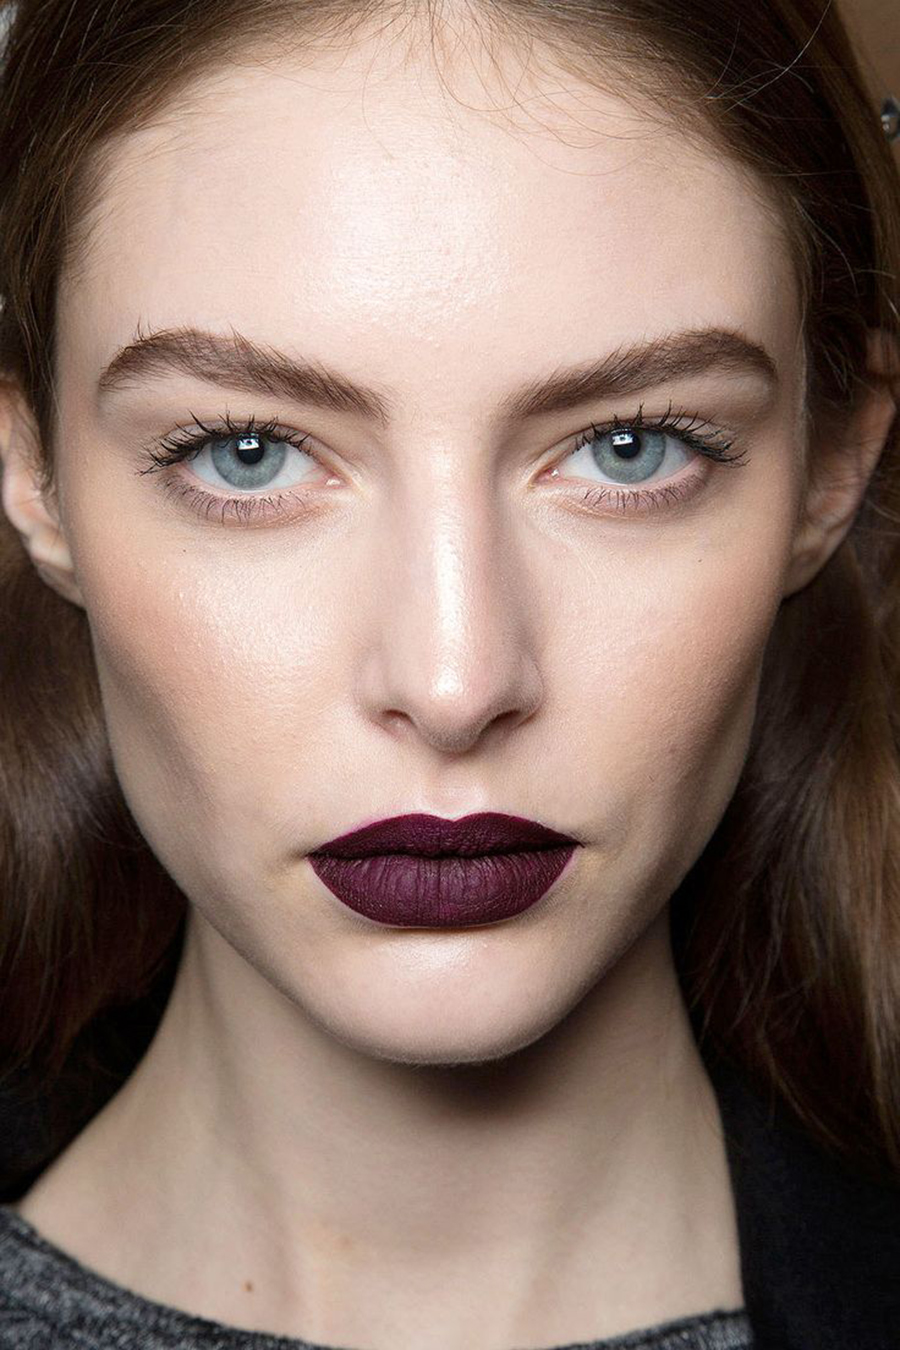 Deep (Almost Black) Shades of Lips